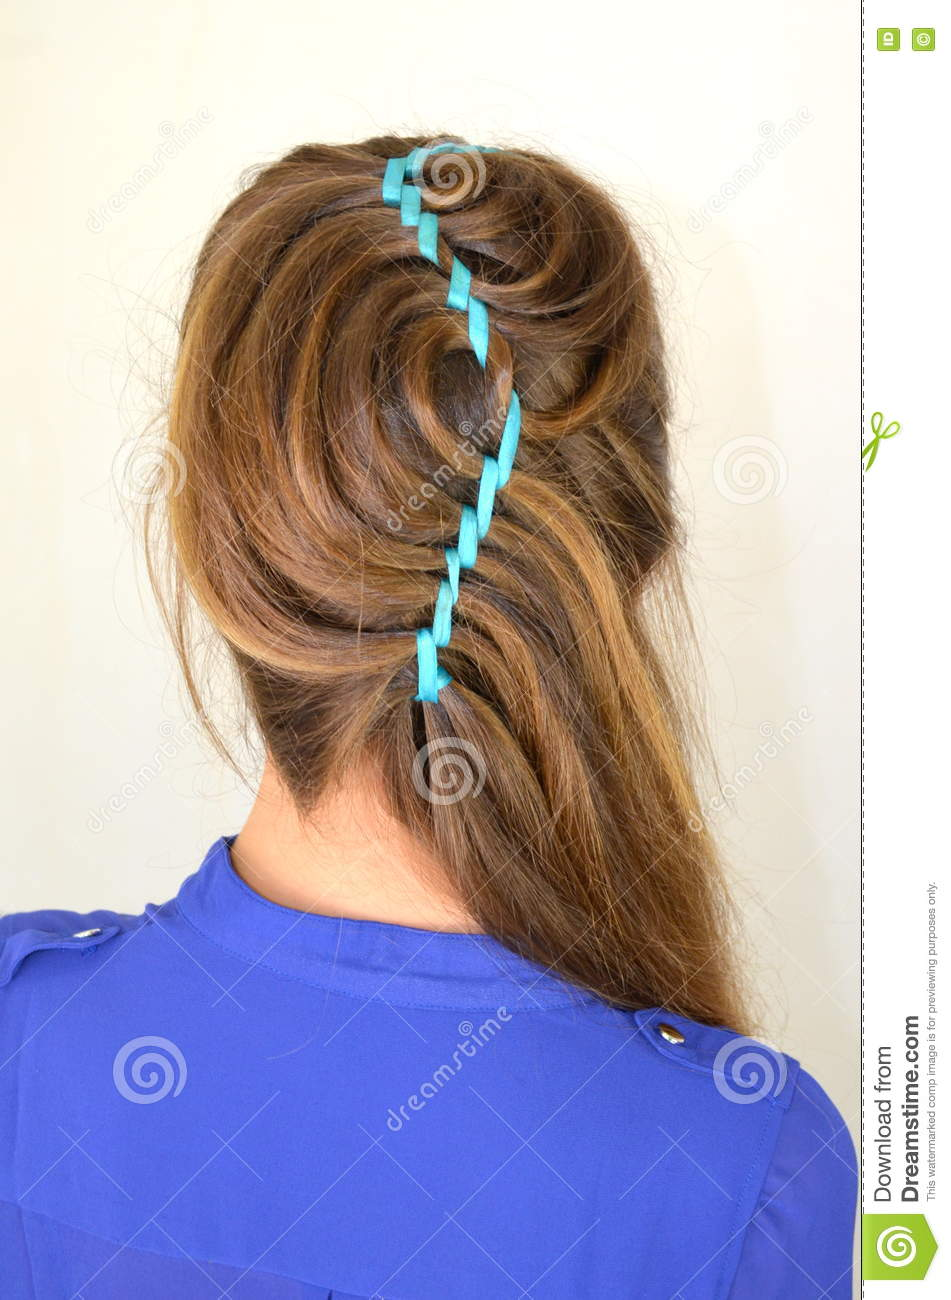 Hollywood Wave Hair Weave With Ribbon Stock Image Image Of Blonde